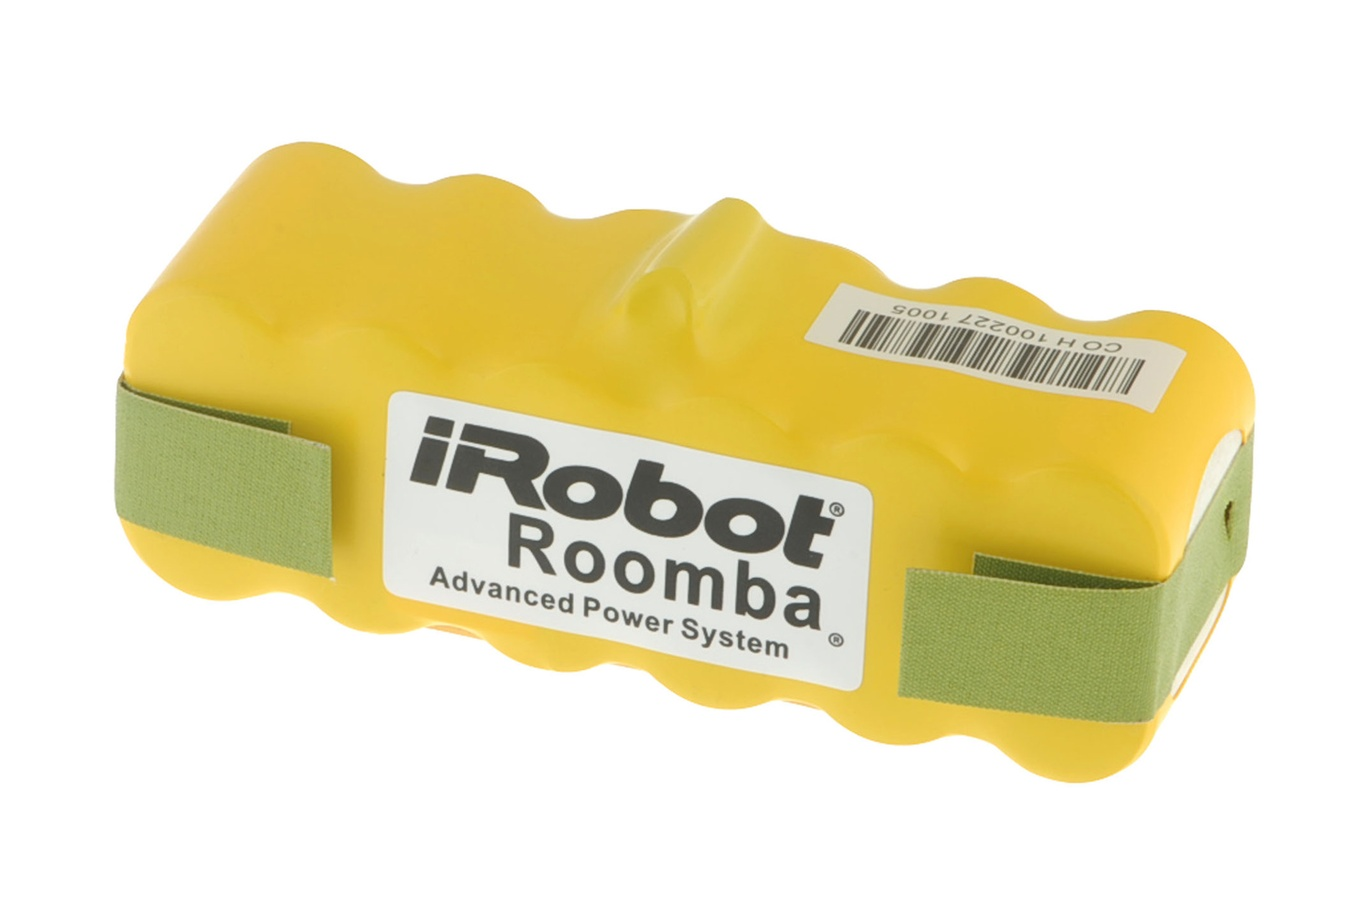 irobot batterie d 39 aspirateur robot roomba cardoso shop. Black Bedroom Furniture Sets. Home Design Ideas